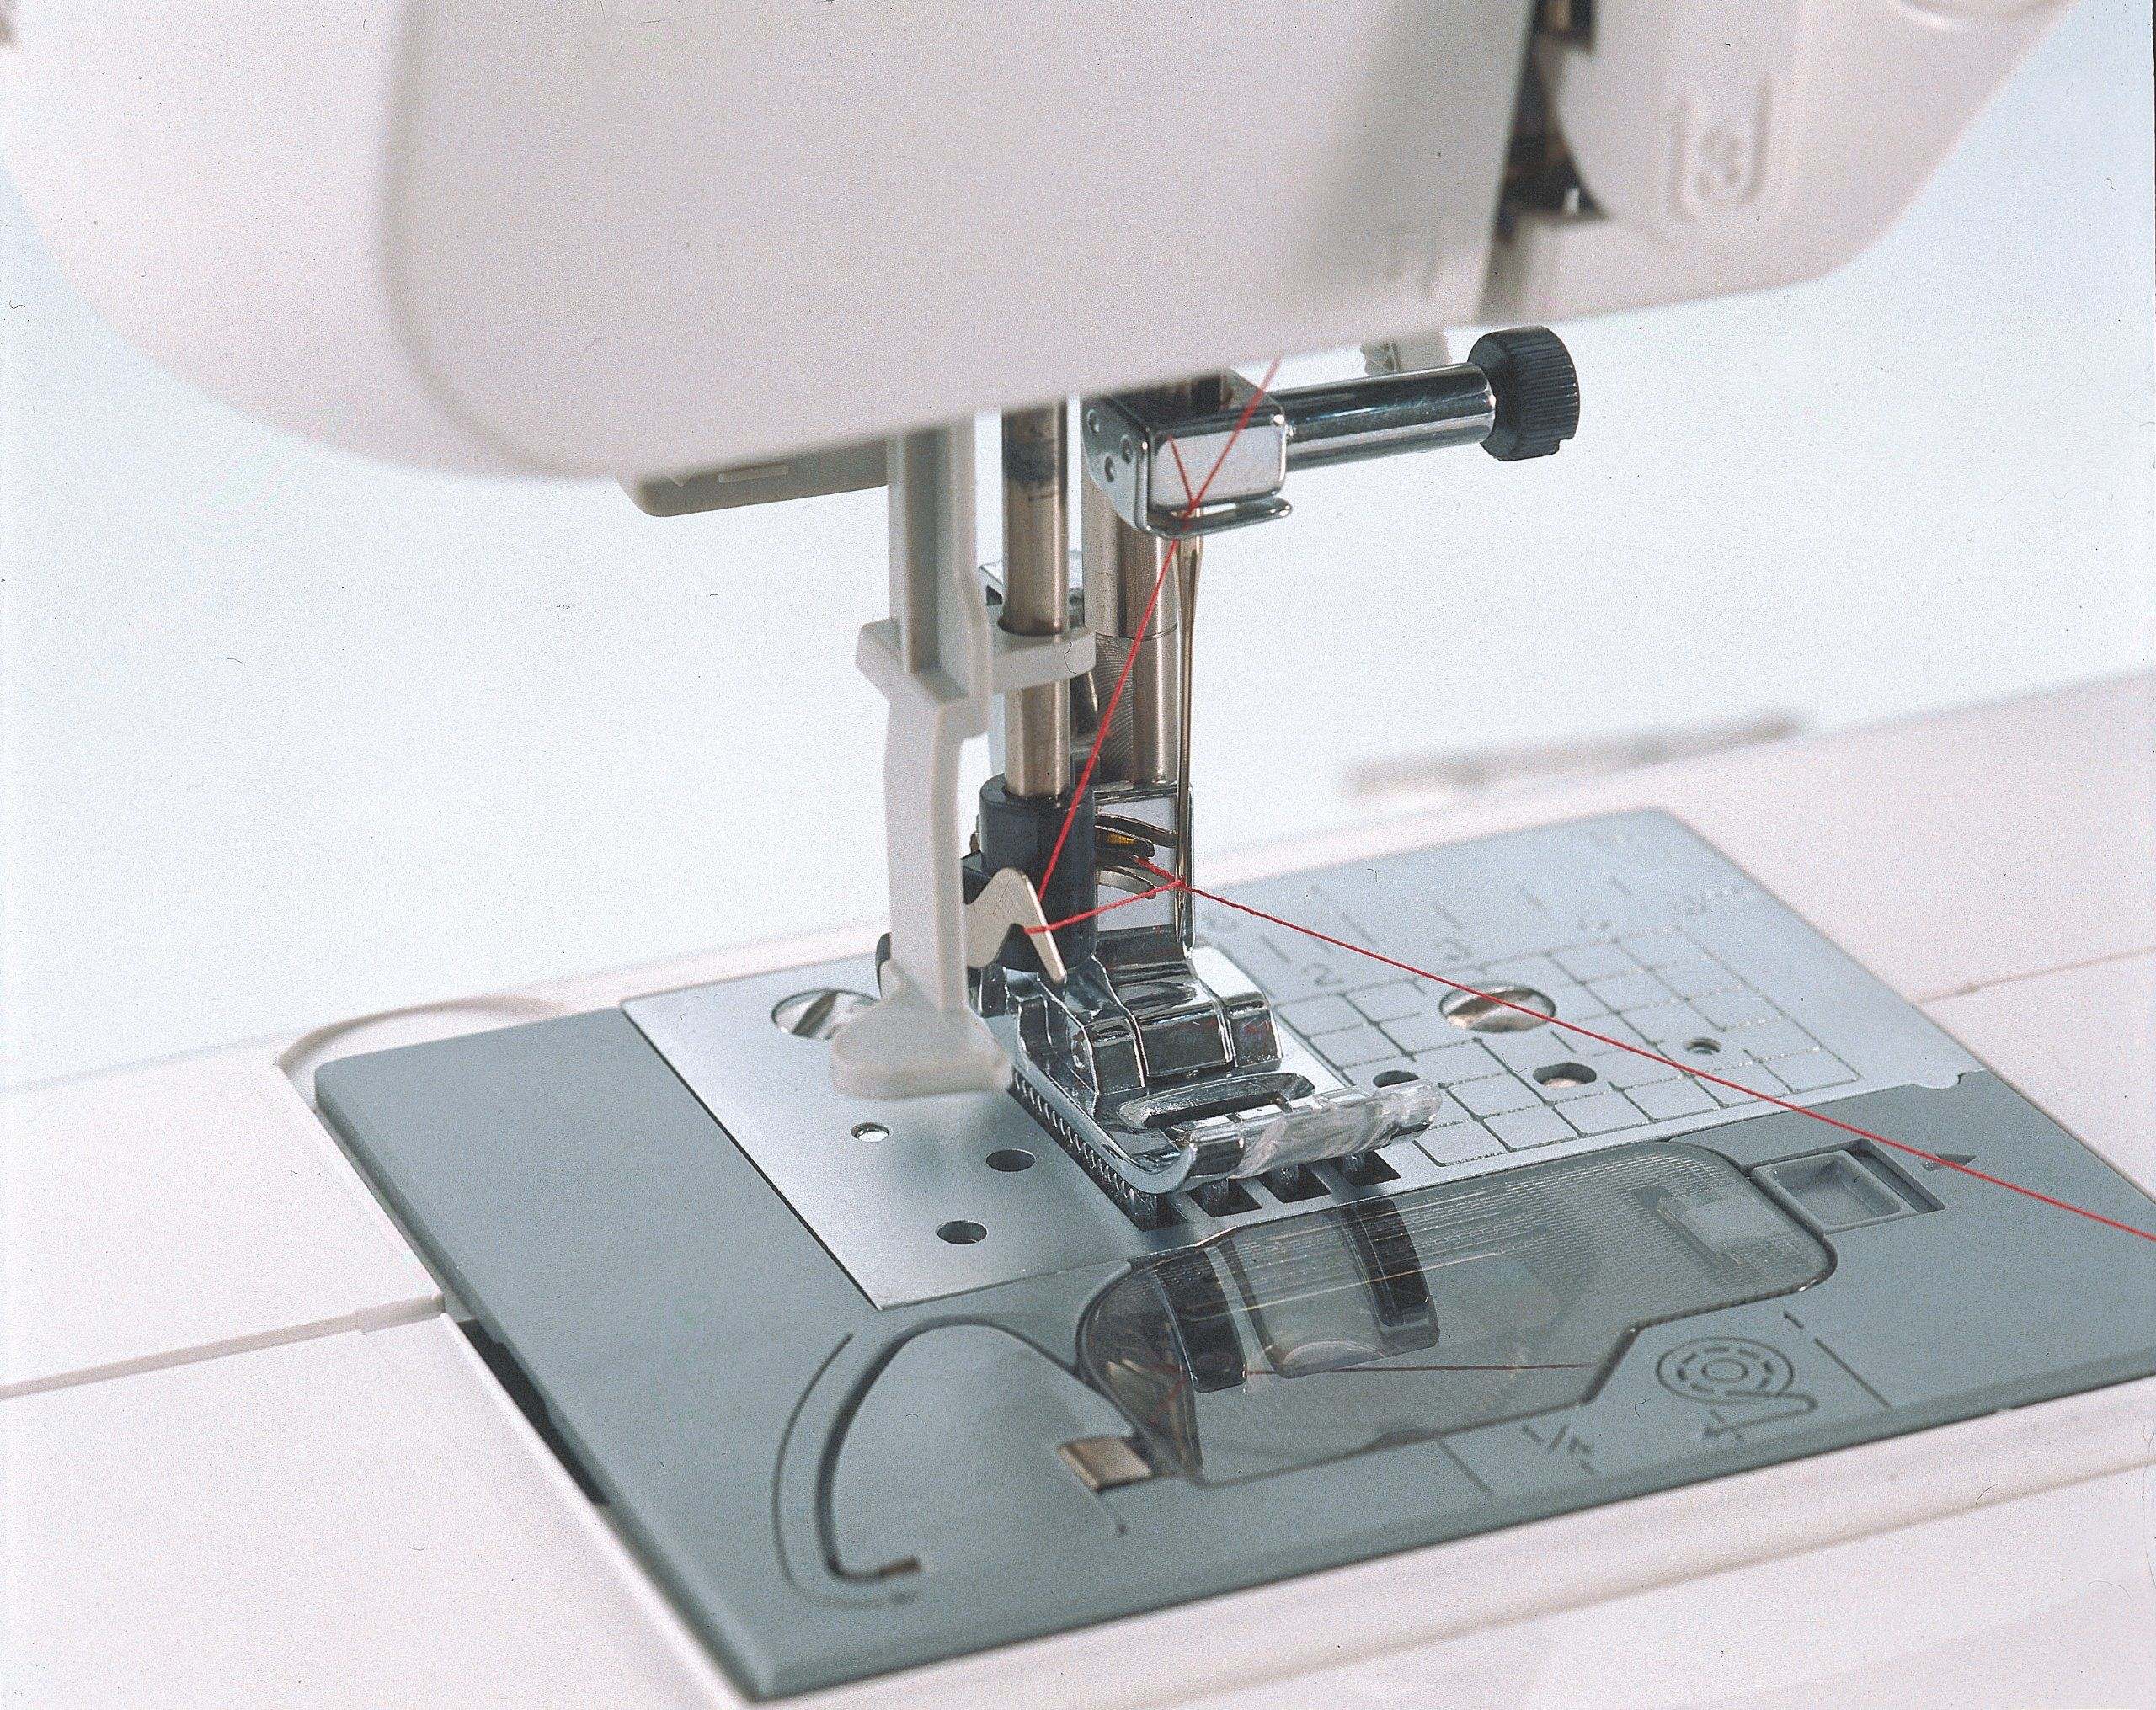 Brother CS6000i FeatureRich Sewing Machine